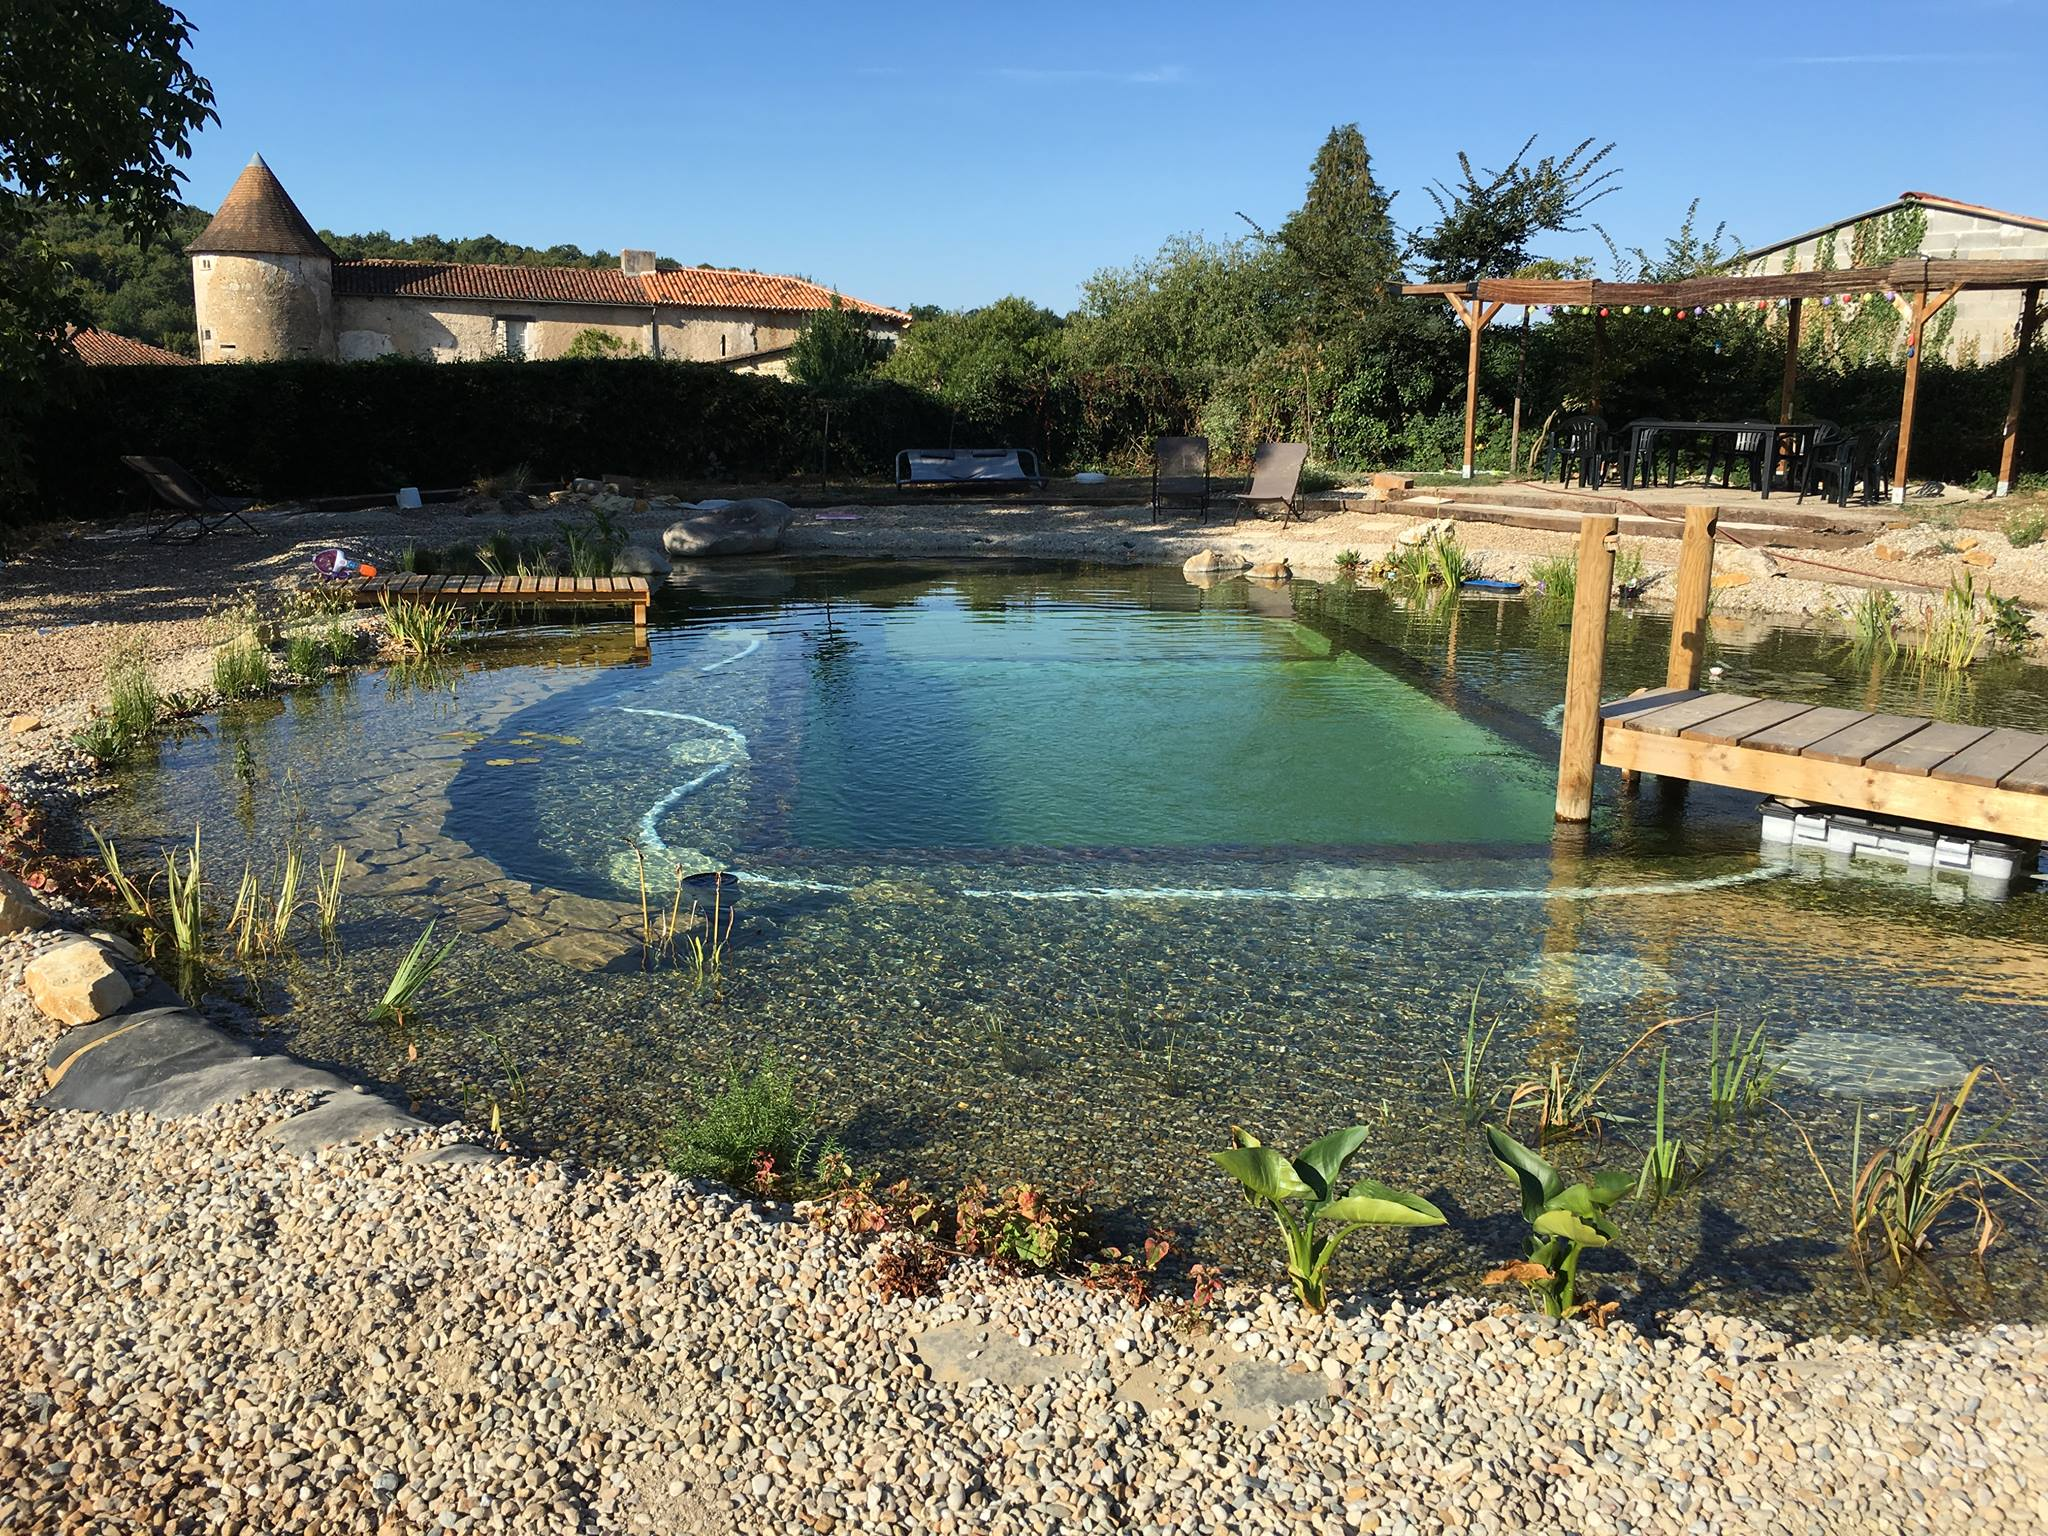 How to build your own natural swimming pond